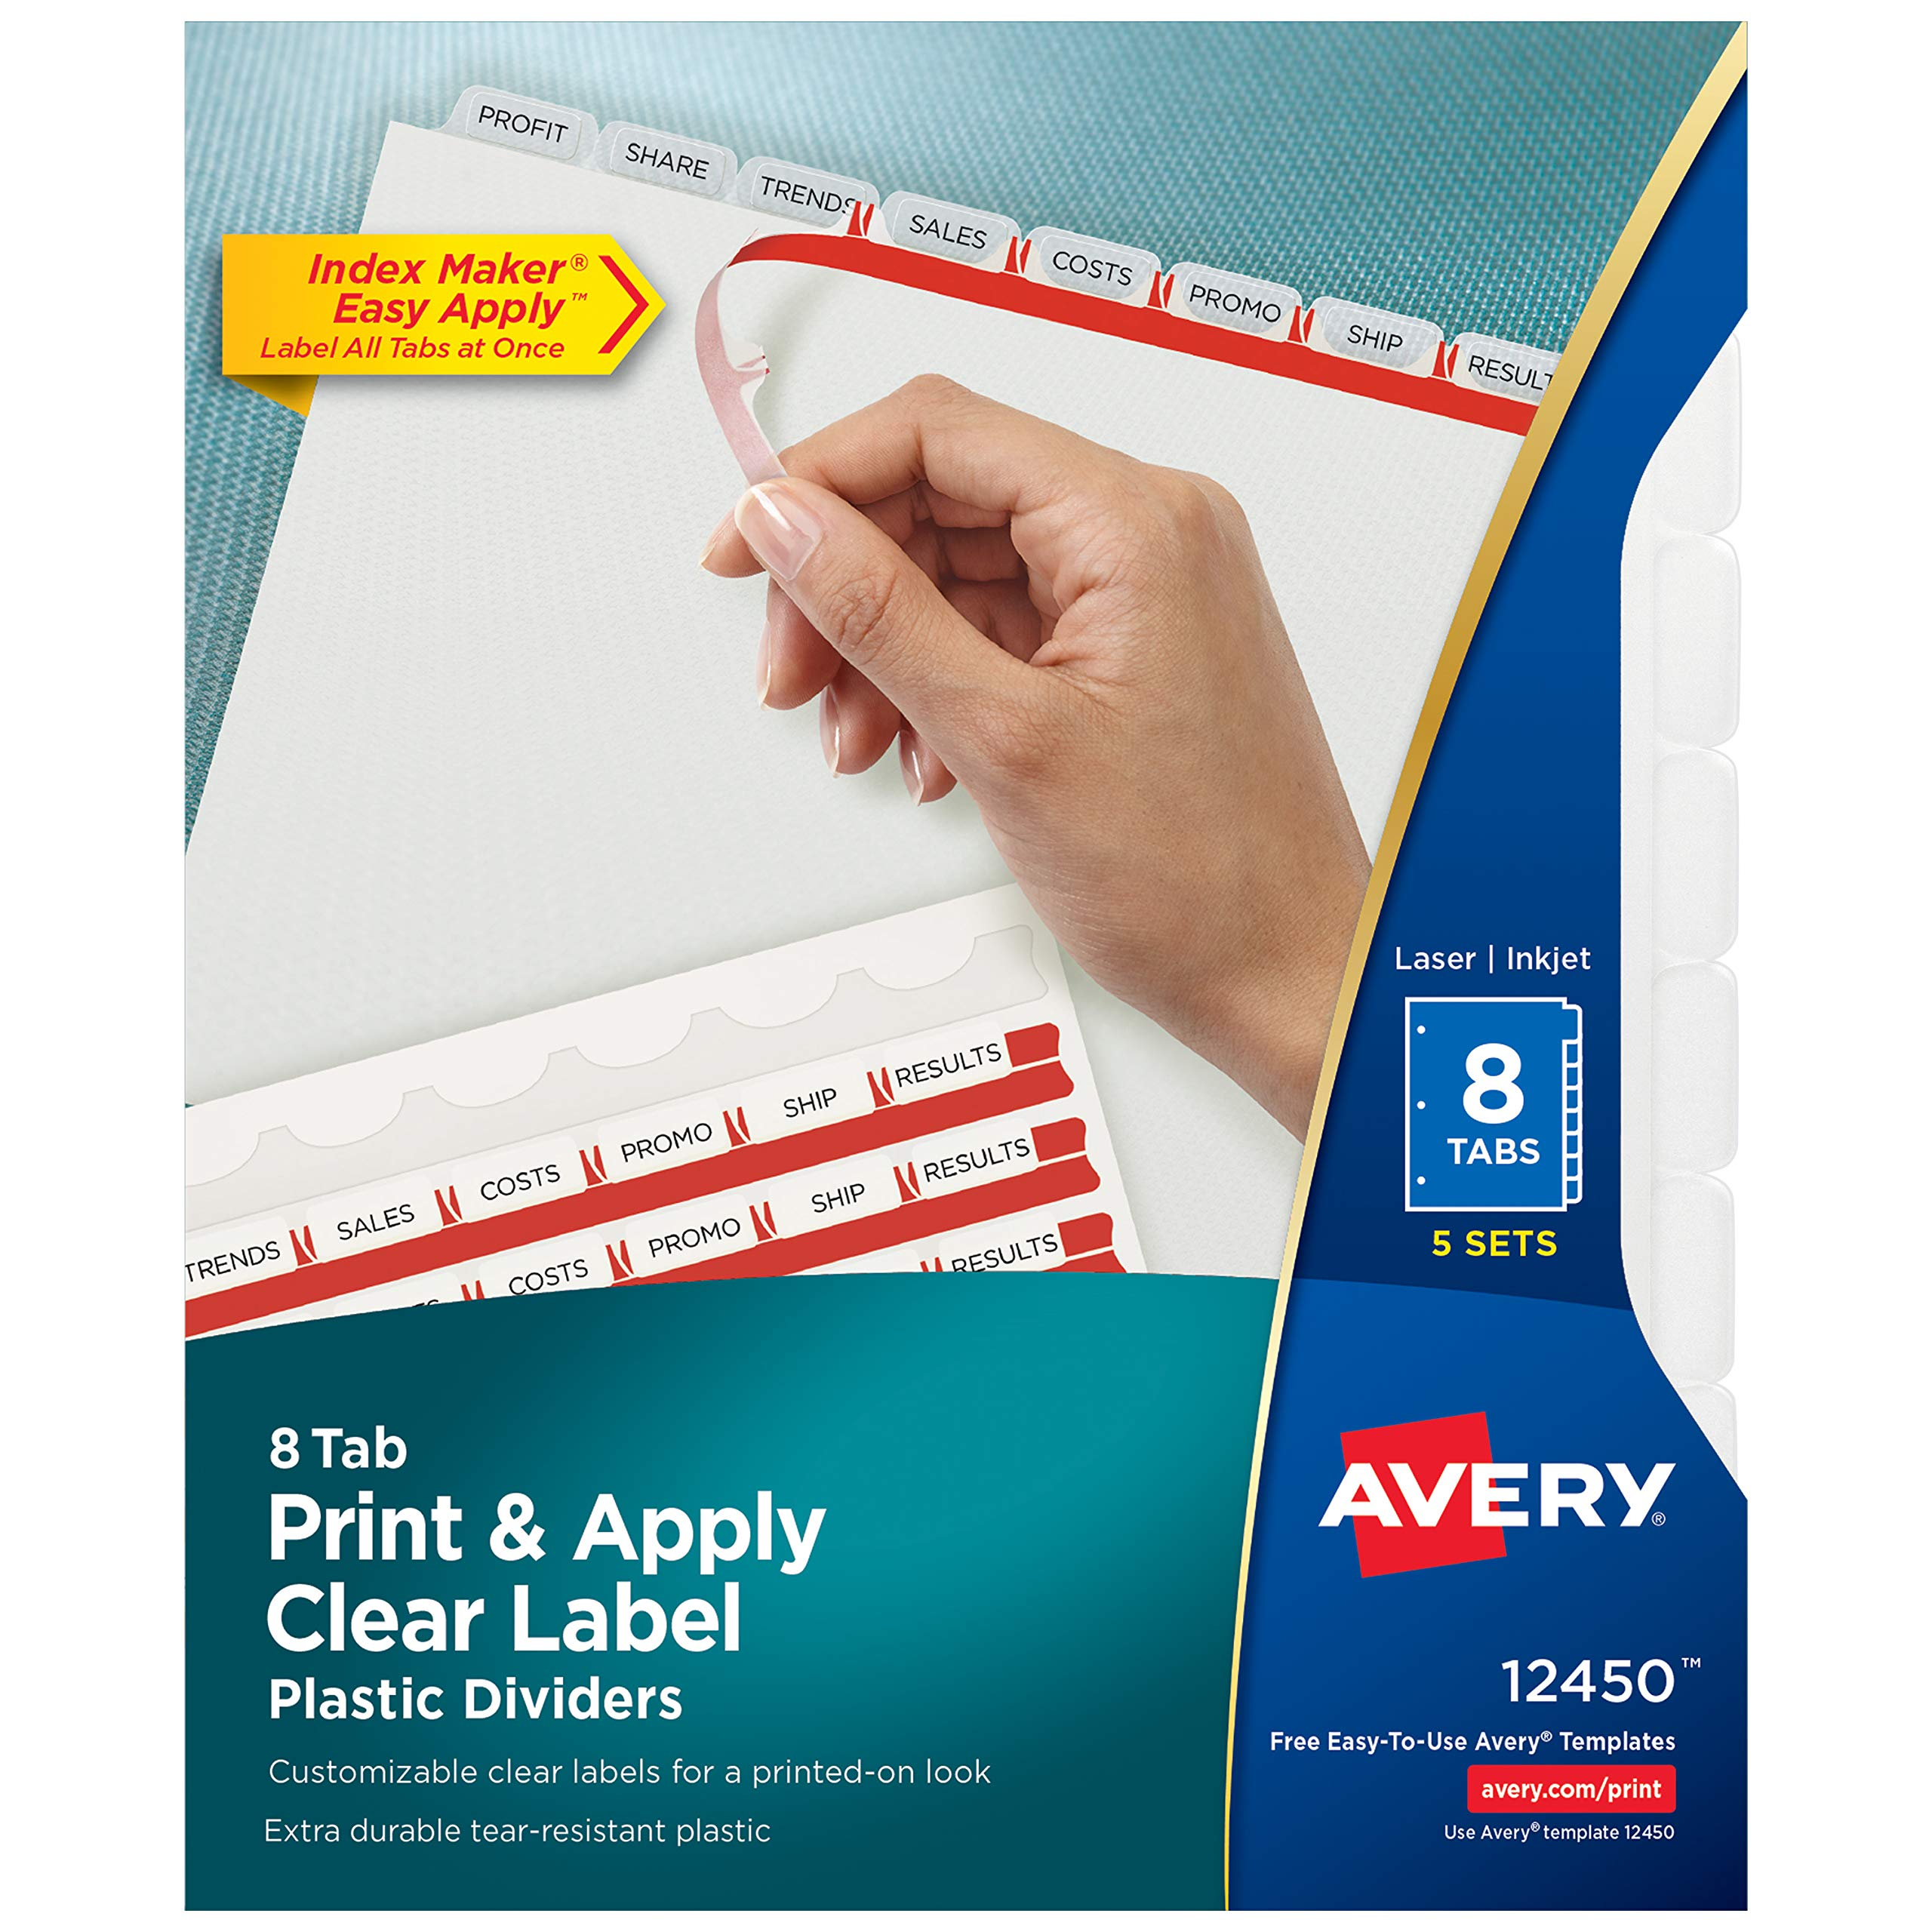 Avery 8-Tab Plastic Dividers, Easy Print & Apply Clear Label Strip, Index Maker, 5 Sets (12450) by Avery